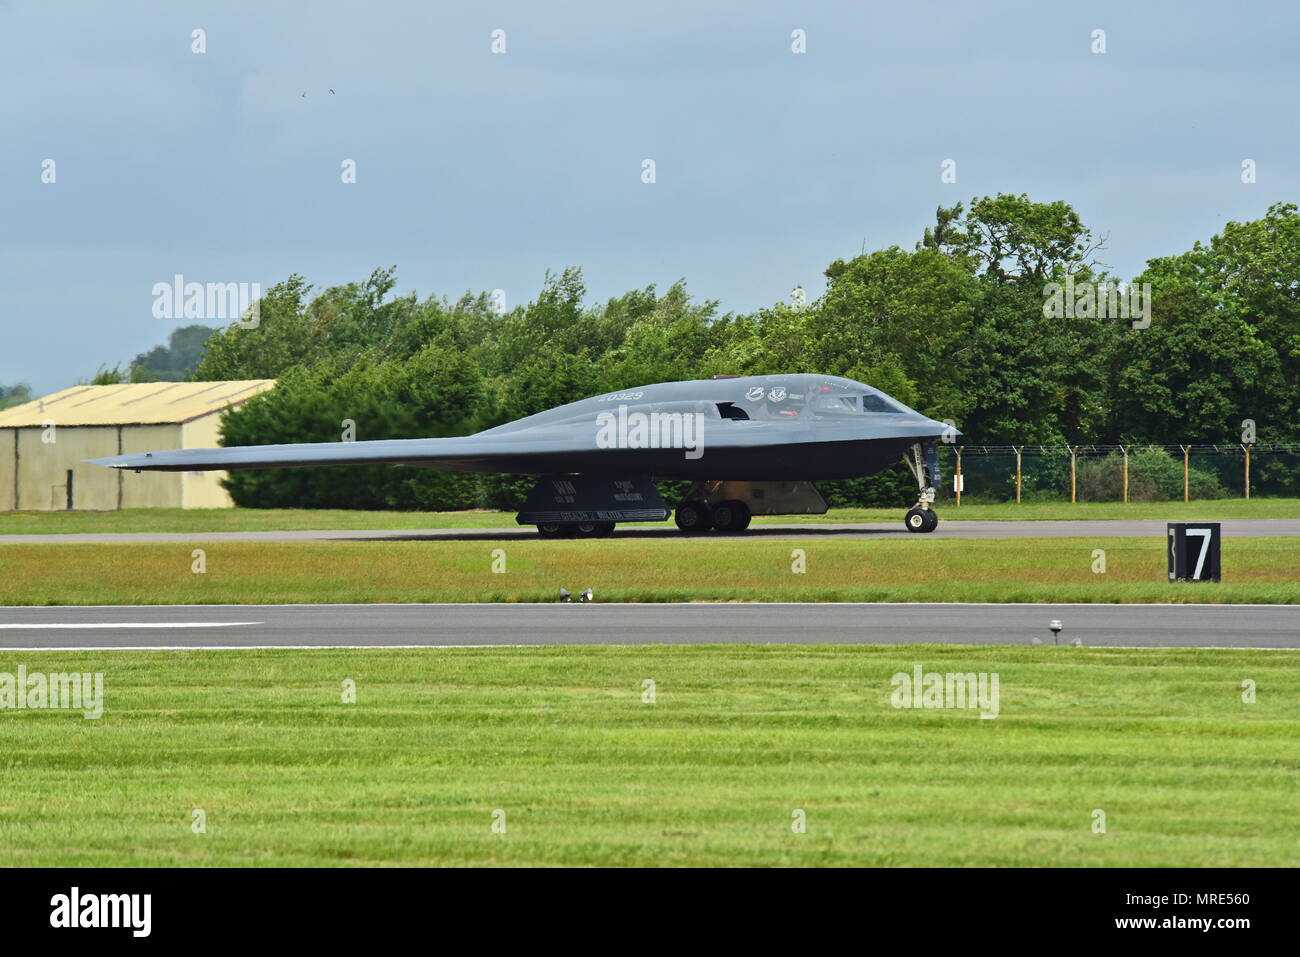 A B-2 Spirt deployed from Whiteman Air Force Base, Mo., approaches the runway at RAF Fairford, U.K., June 9, 2017. The B-2 routinely conducts bomber assurance and deterrence missions providing a flexible and vigilant long-range global strike capability, and is just one demonstration of the U.S. commitment to supporting global security. (U.S. Air Force photo by Tech. Sgt. Miguel Lara III) Stock Photo